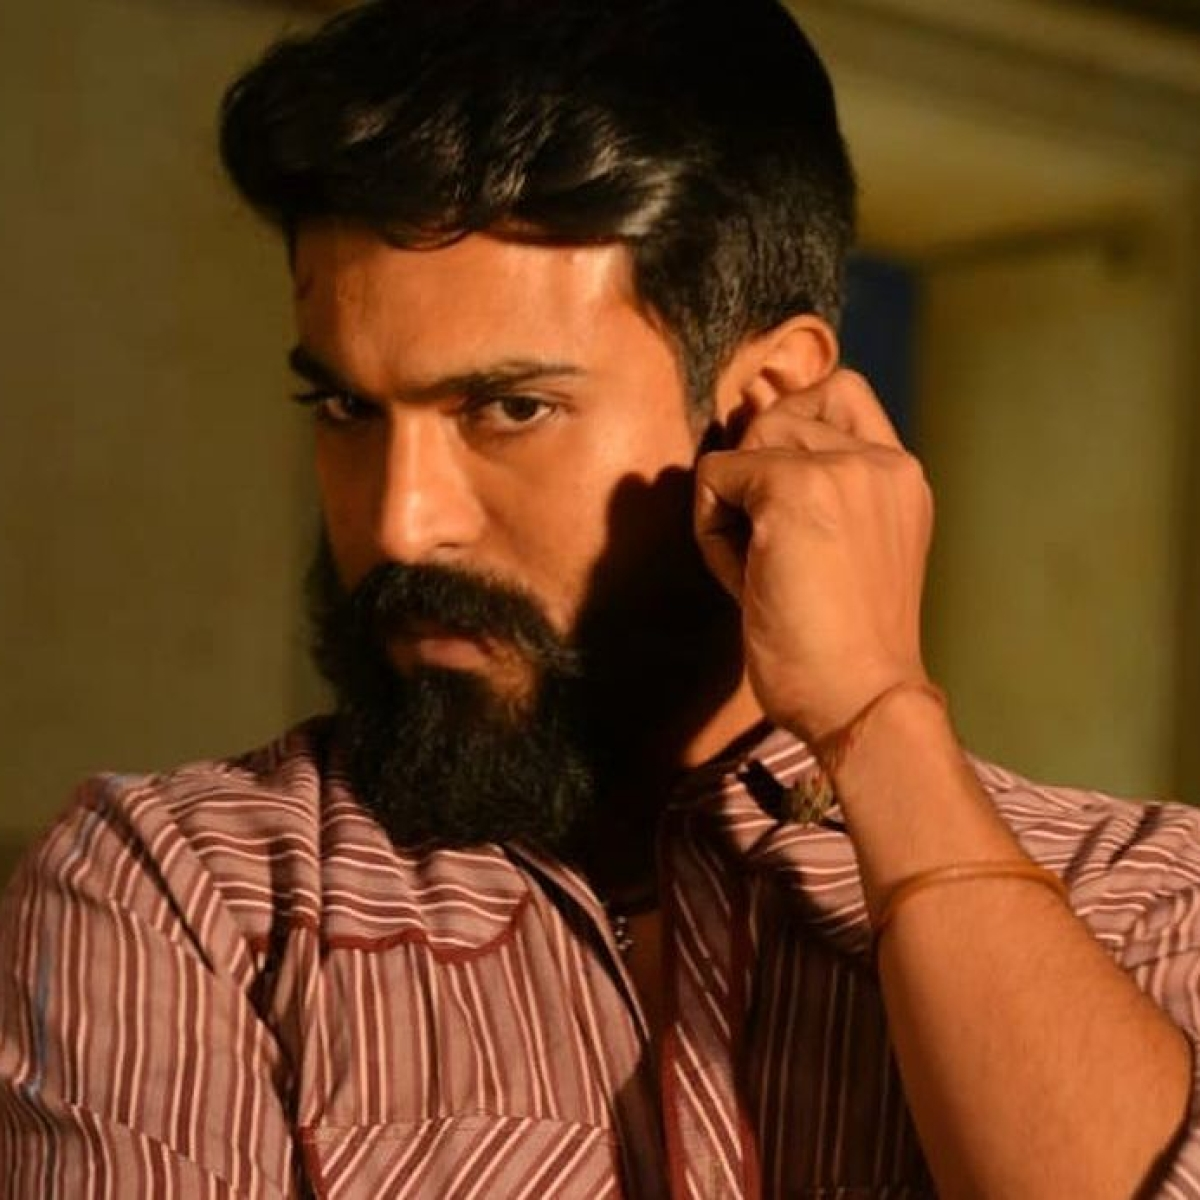 Telugu actor Ram Charan tests positive for COVID-19, says he's 'asymptomatic'